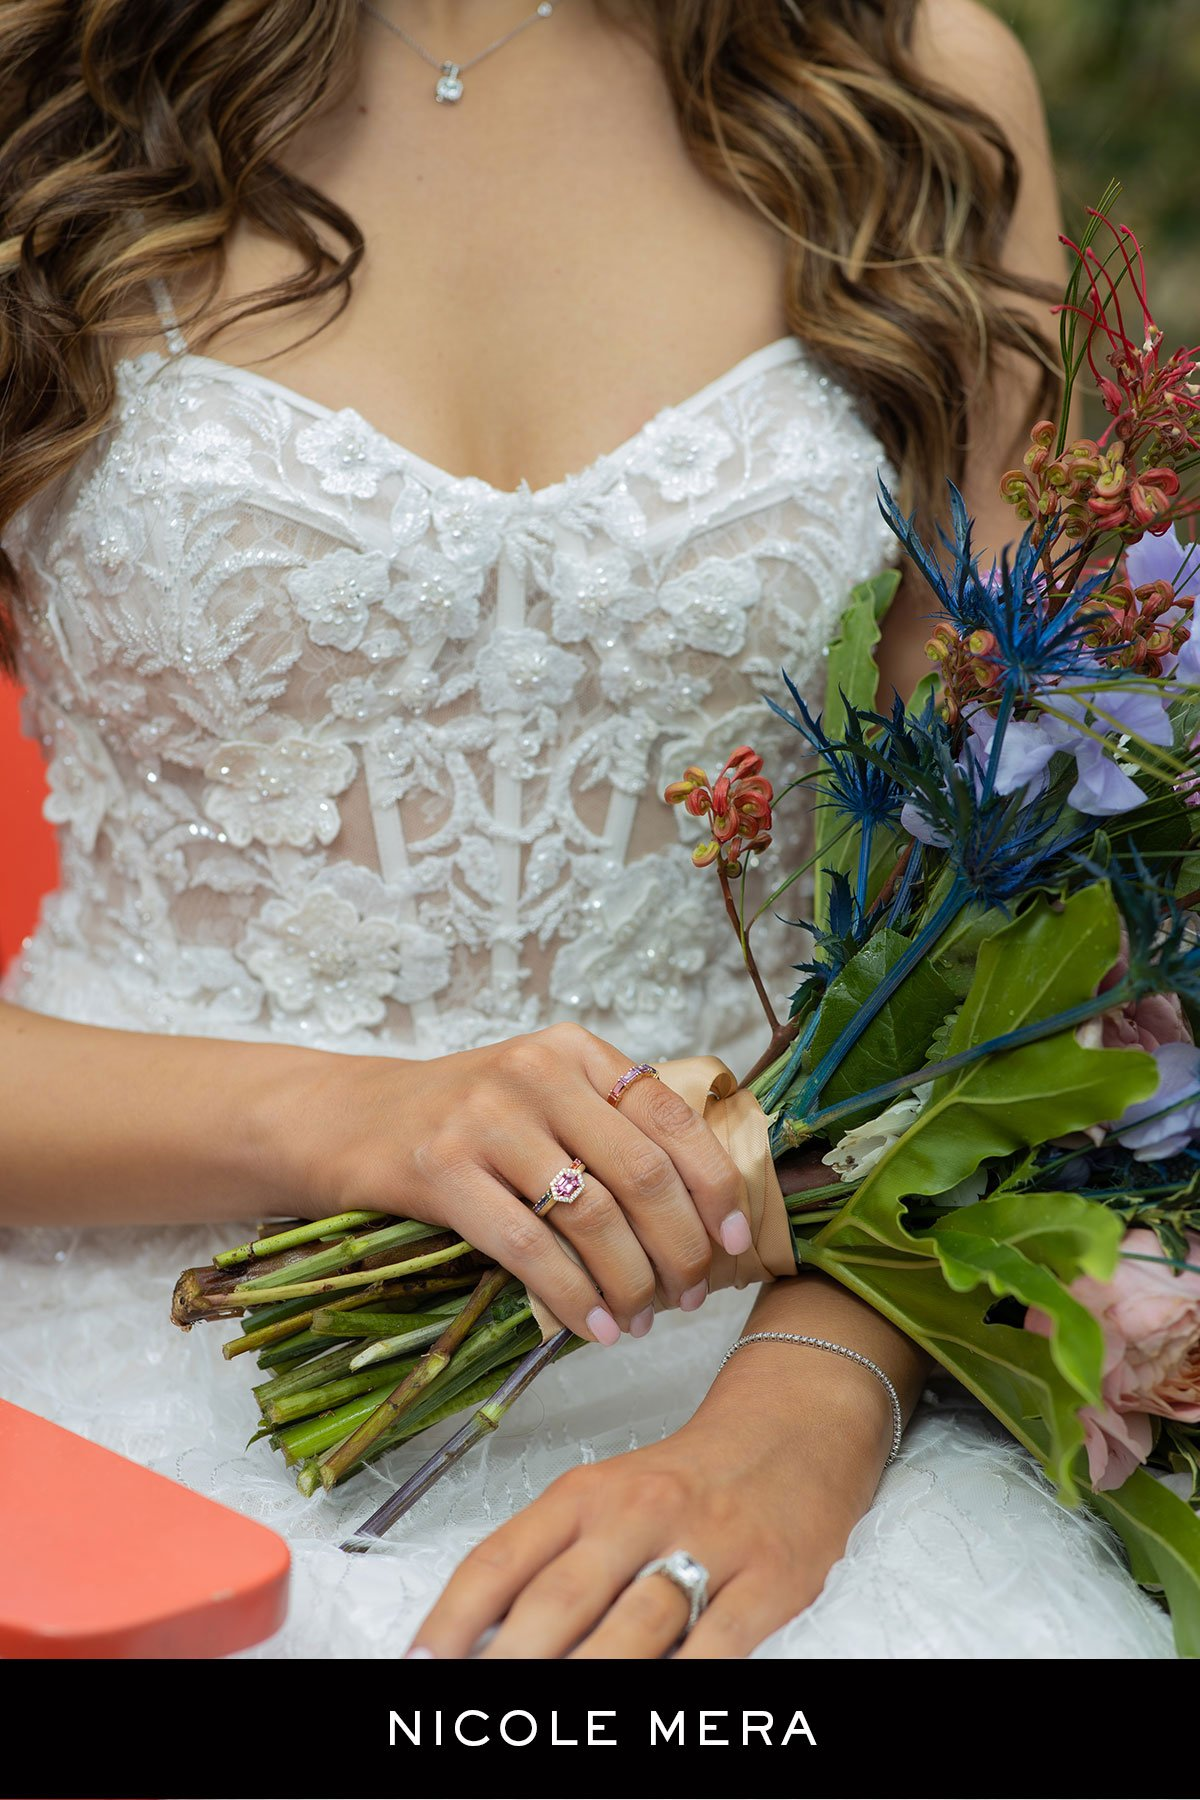 Nicole-Mera-San-Antonio-Weddings-Floral-Photoshoot-2020-MainC